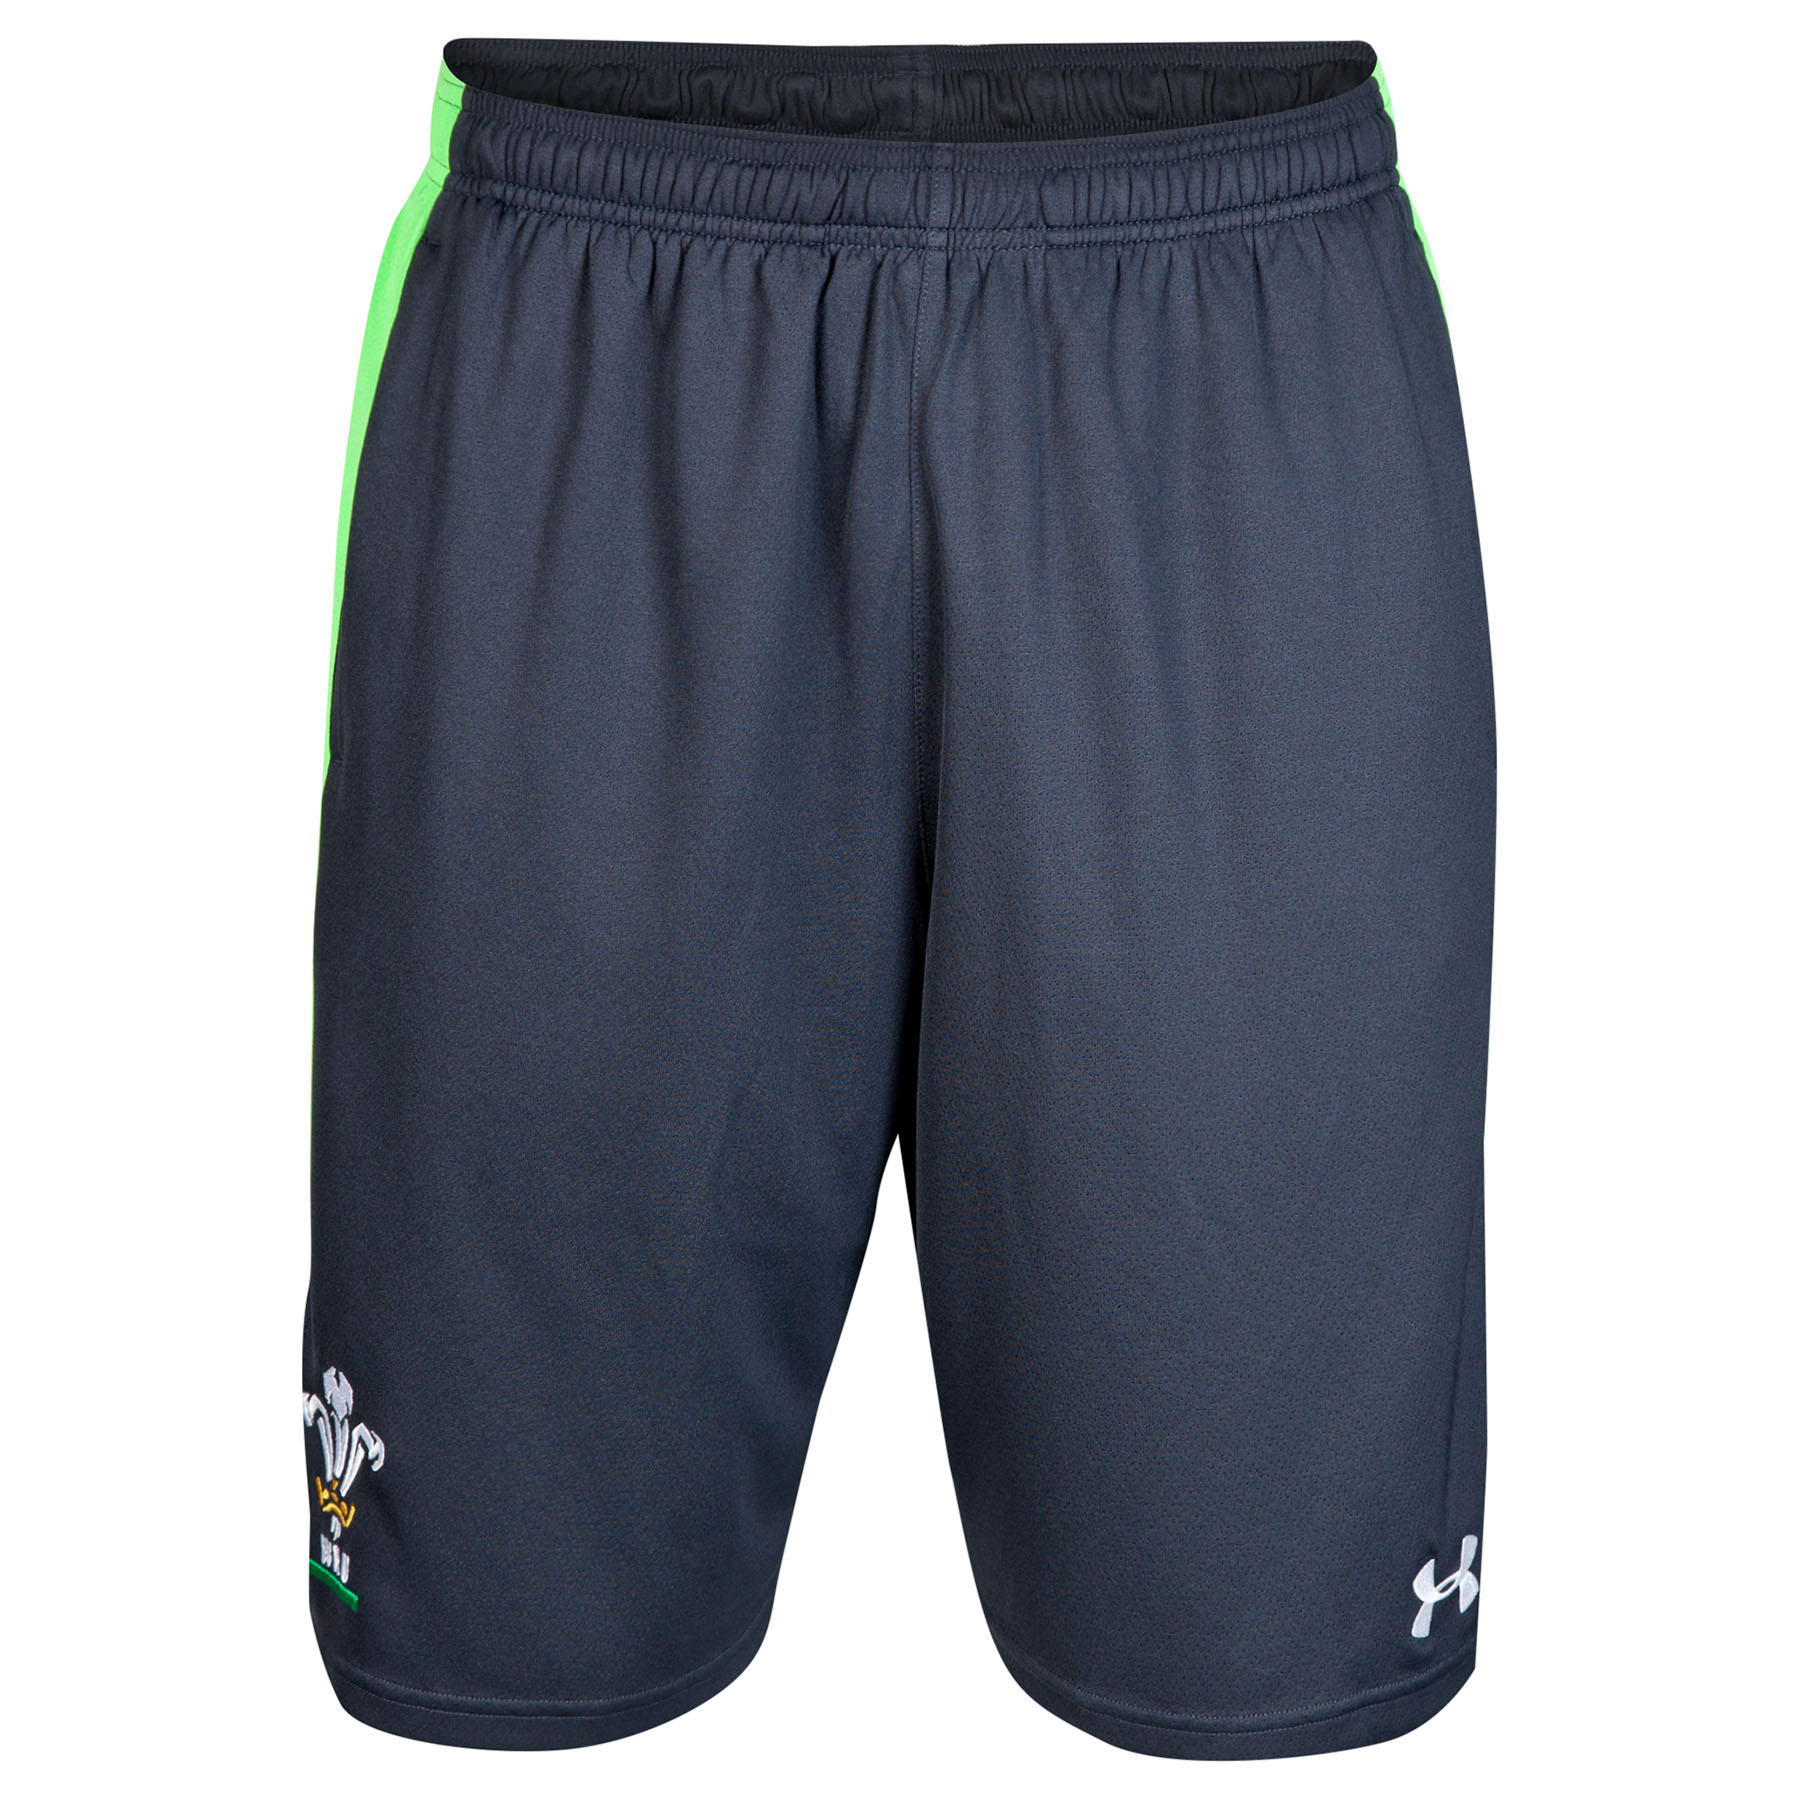 Wales Rugby Union 9Inch Training Short 2014/15 Black